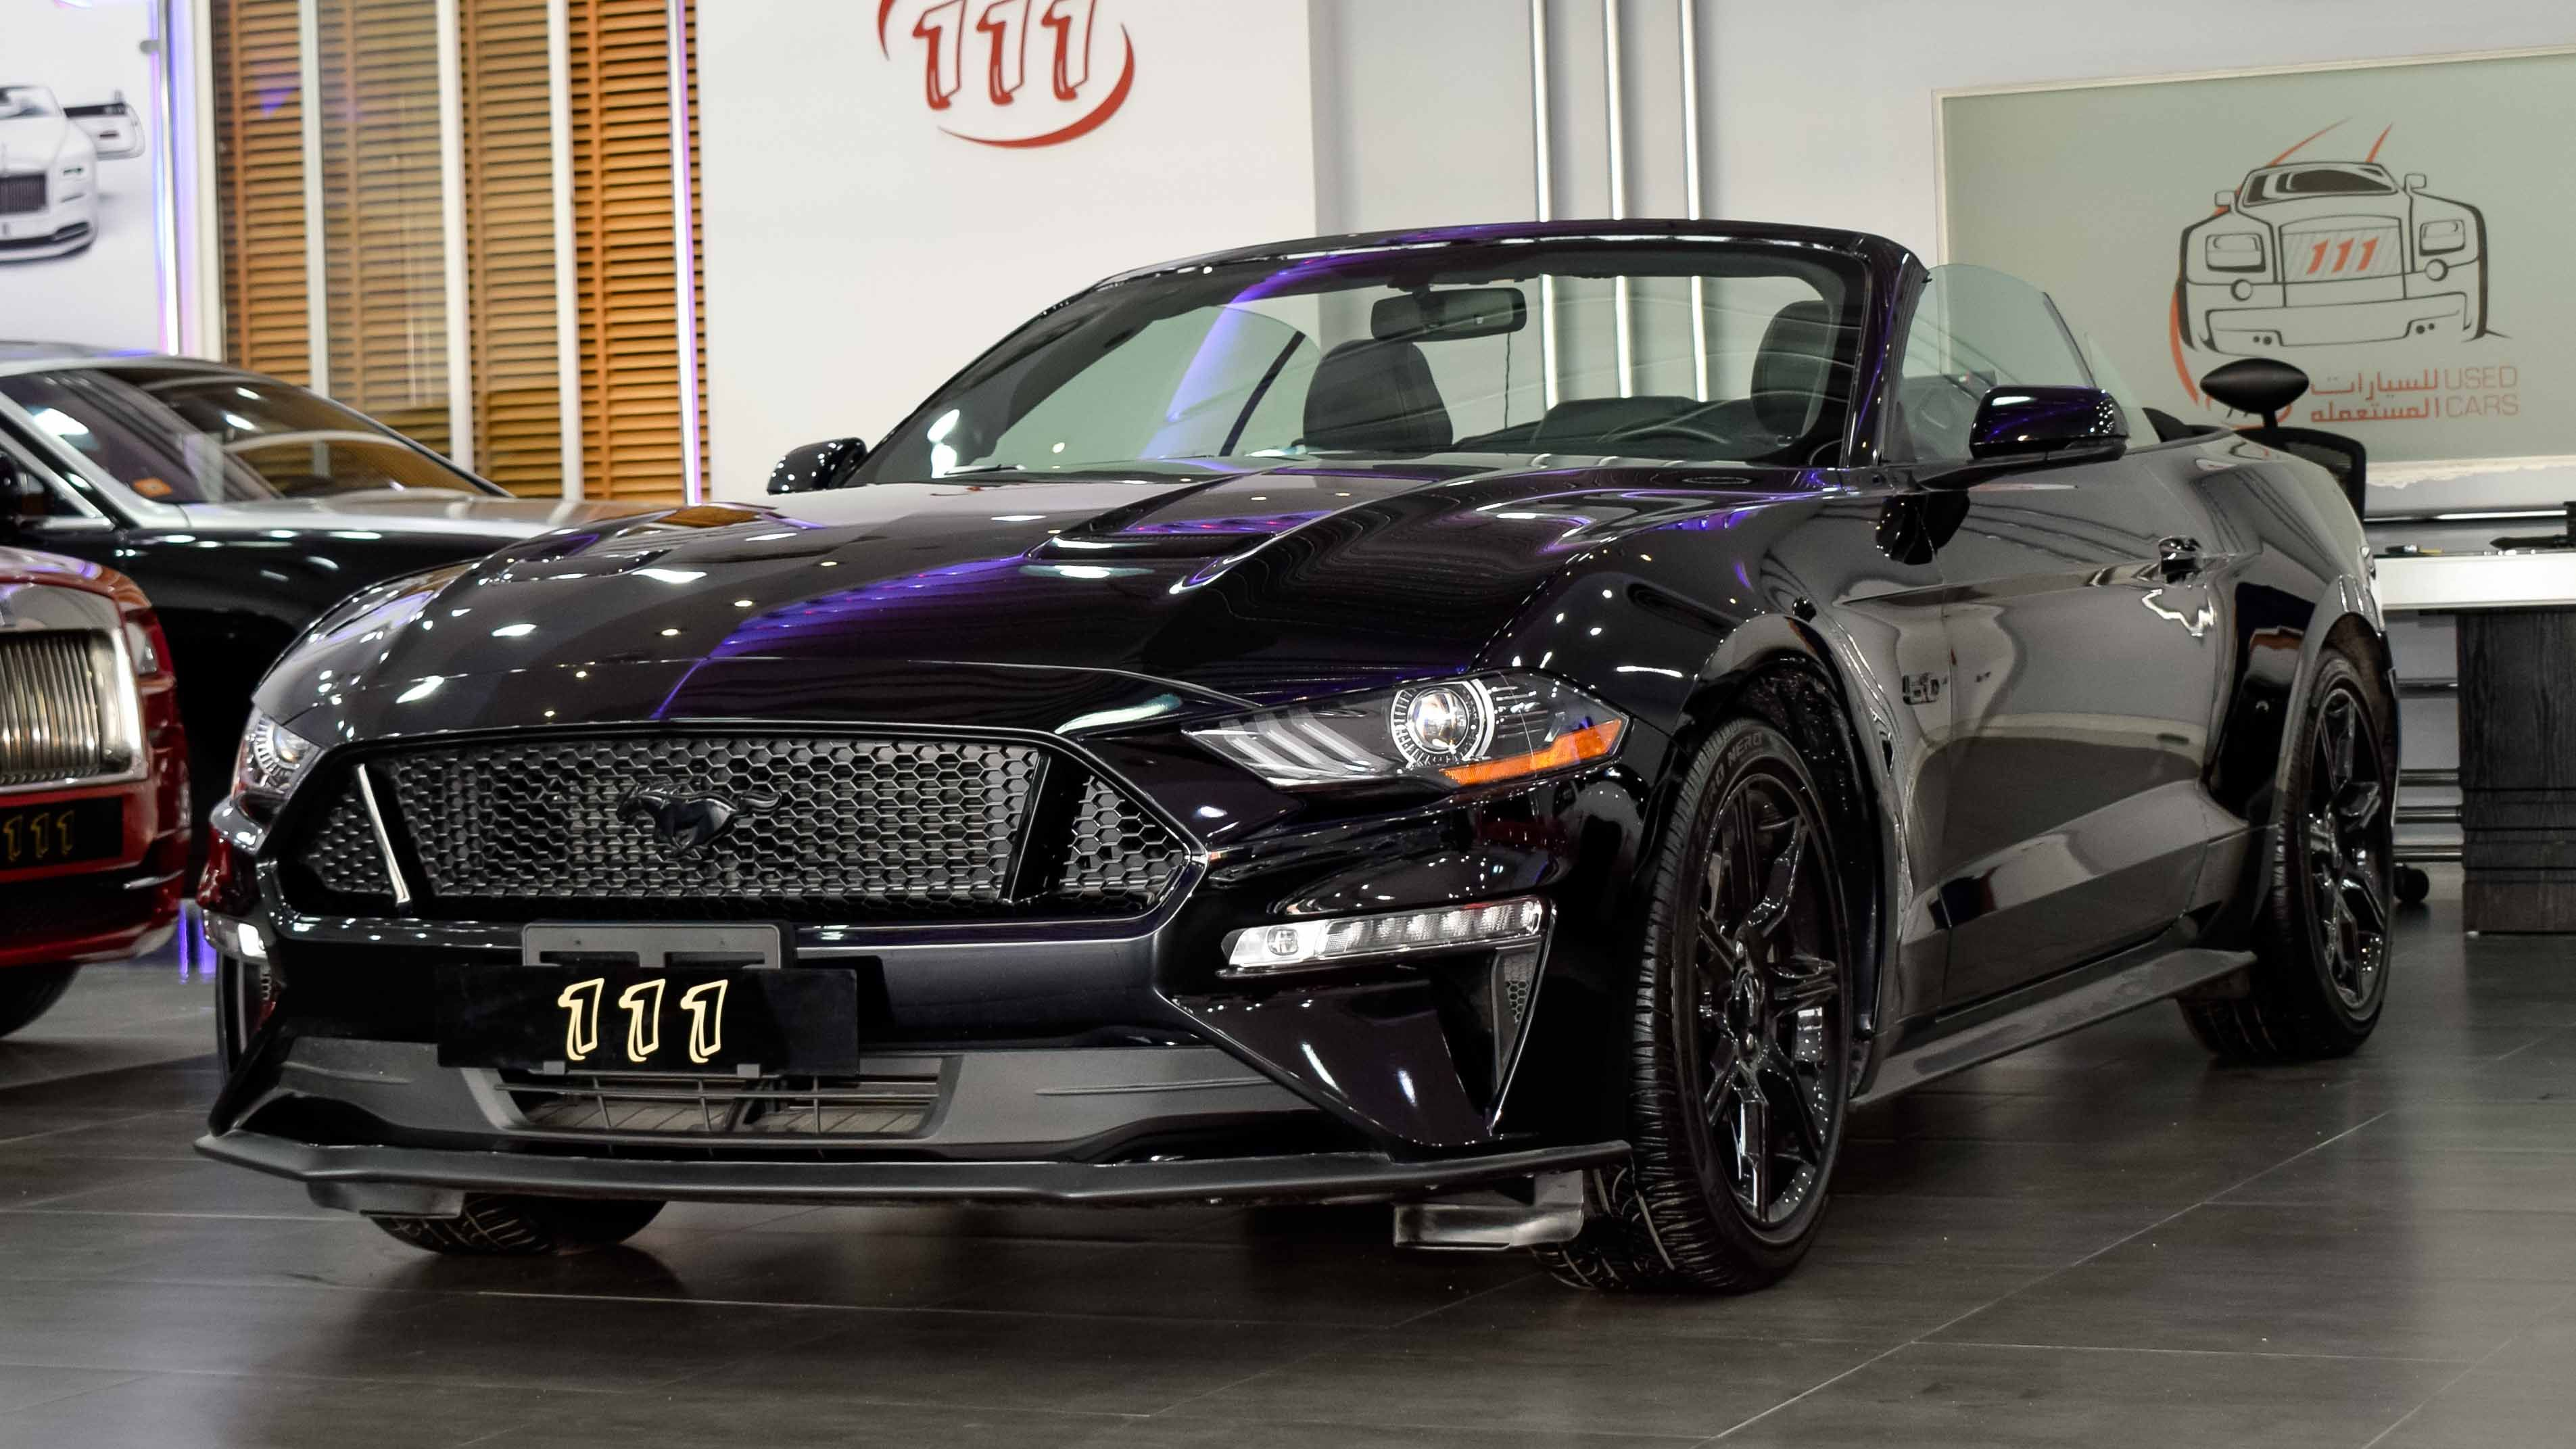 Model Ford Mustang 5 0 Gt V8 Year 2018 Km 14 600 Price